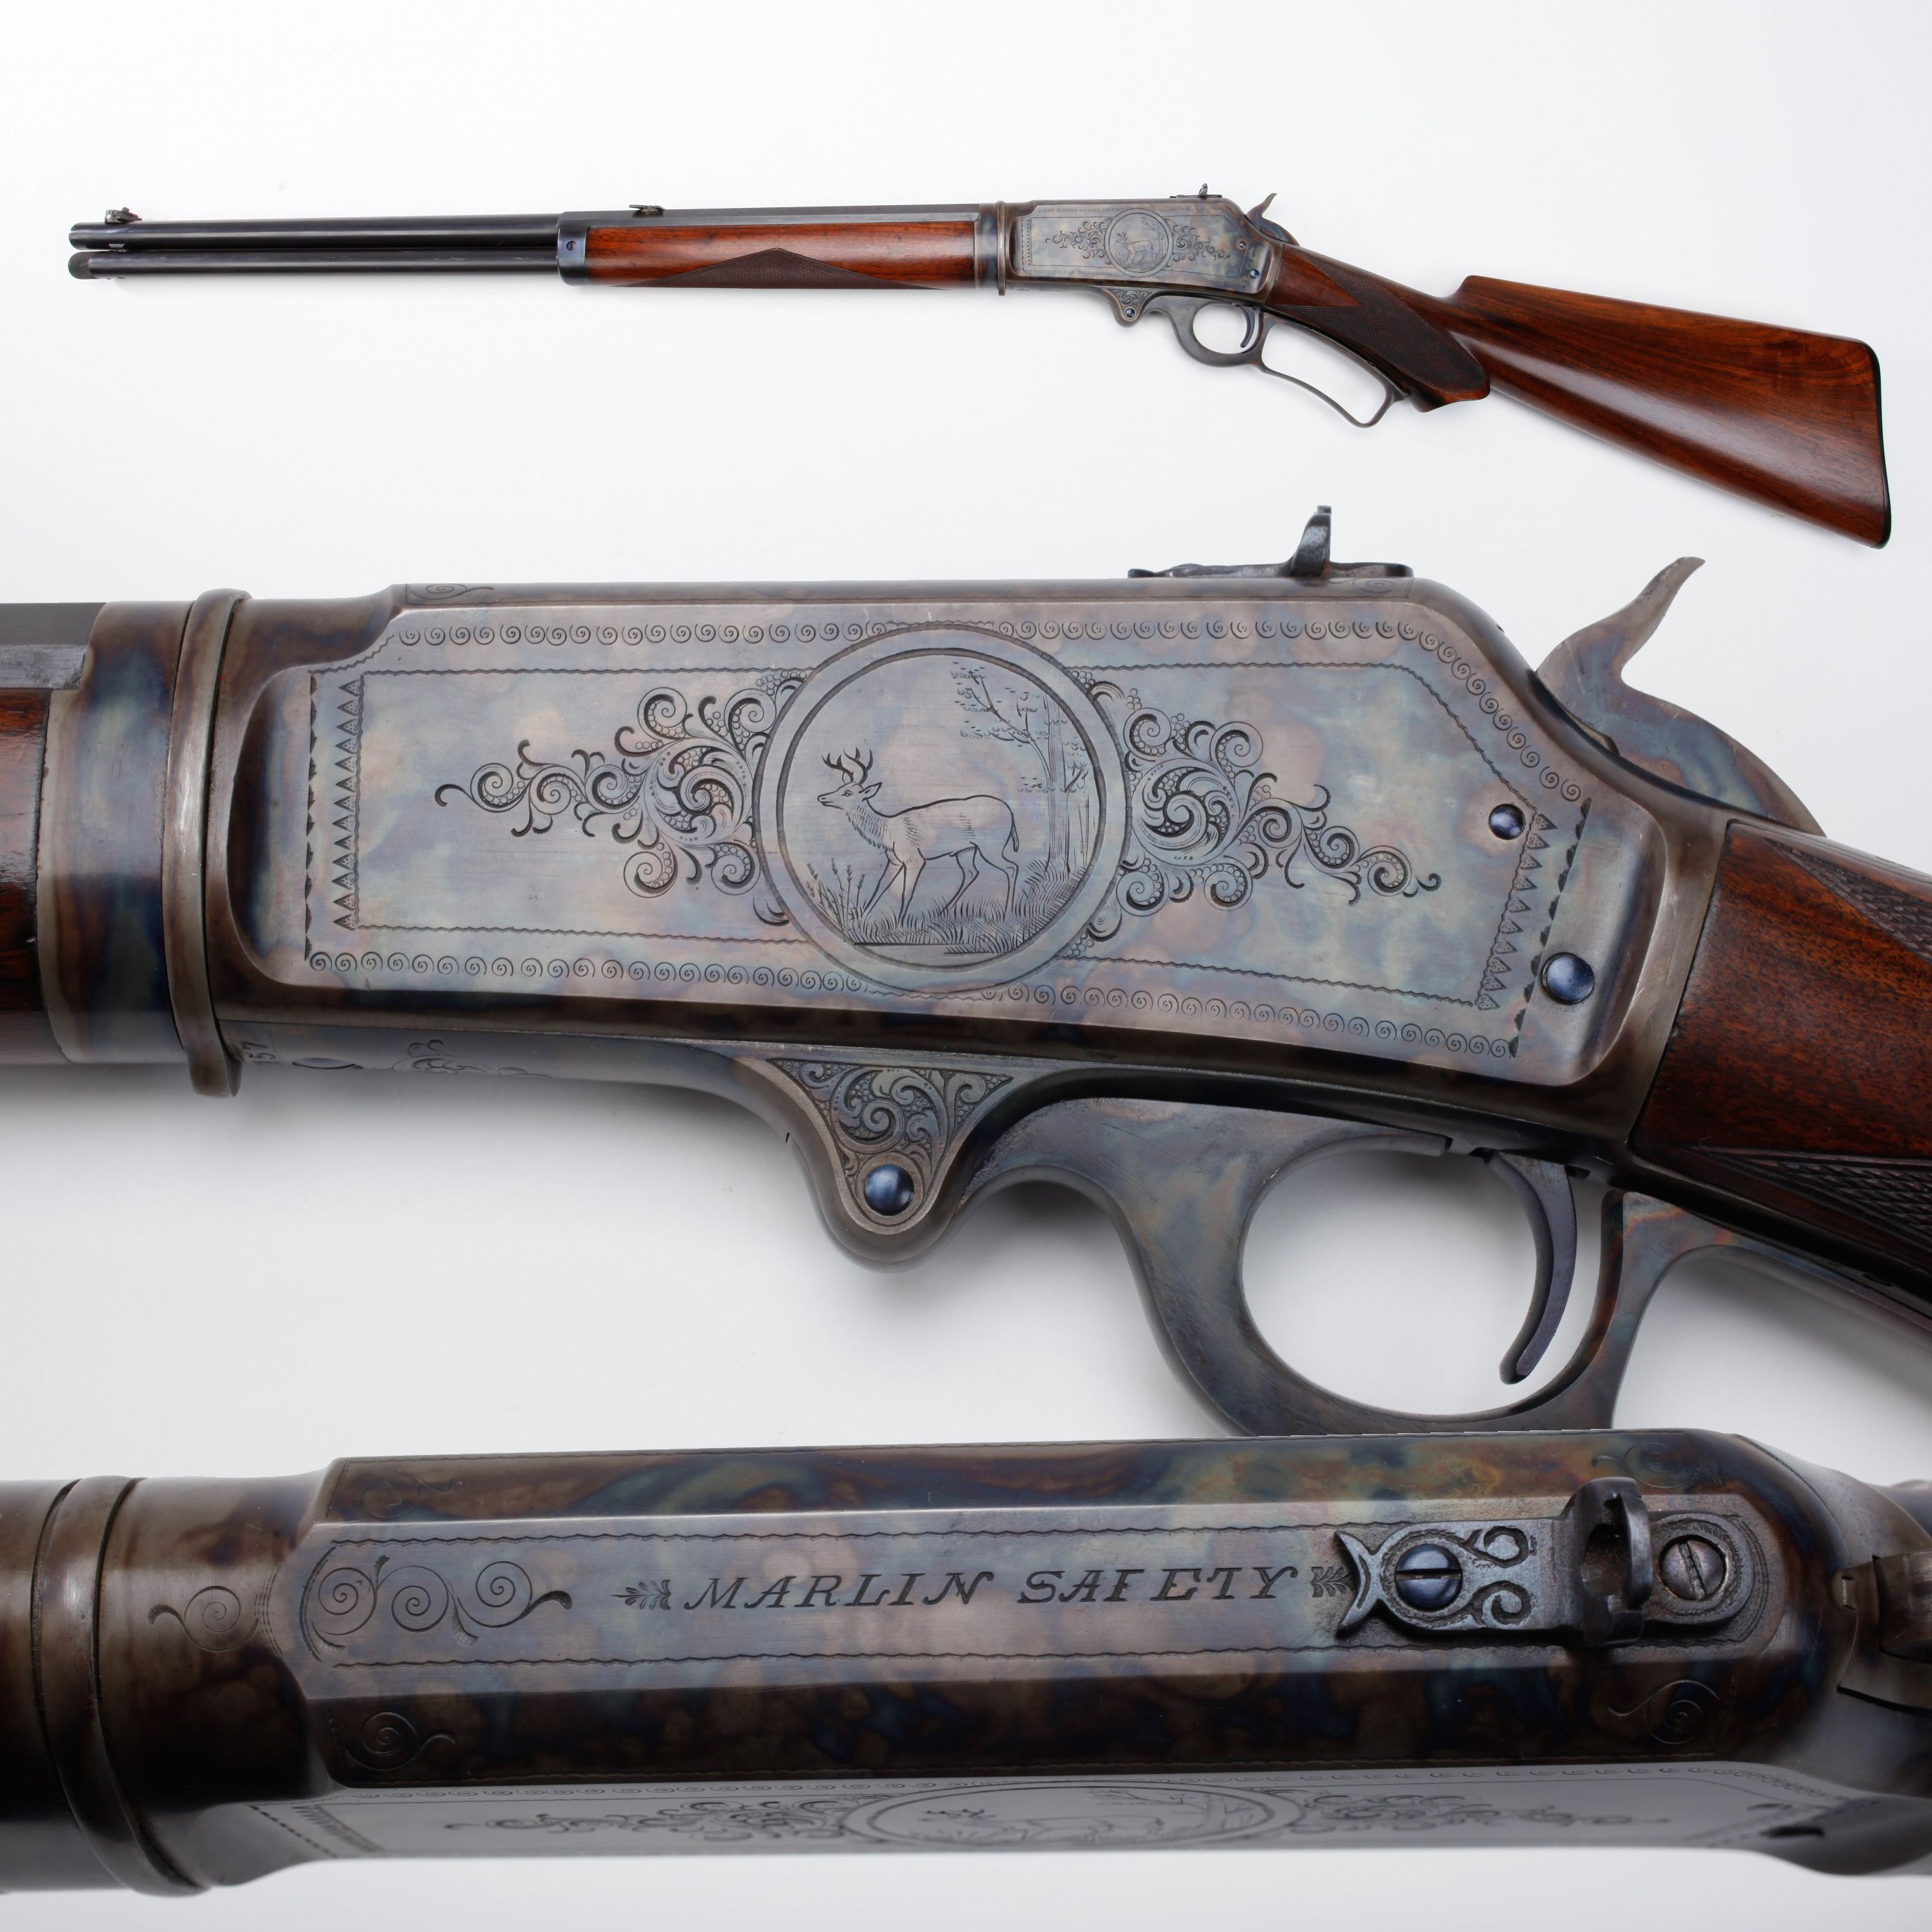 Marlin M1893 Rifle - Marlin offered the 1893 in the standard